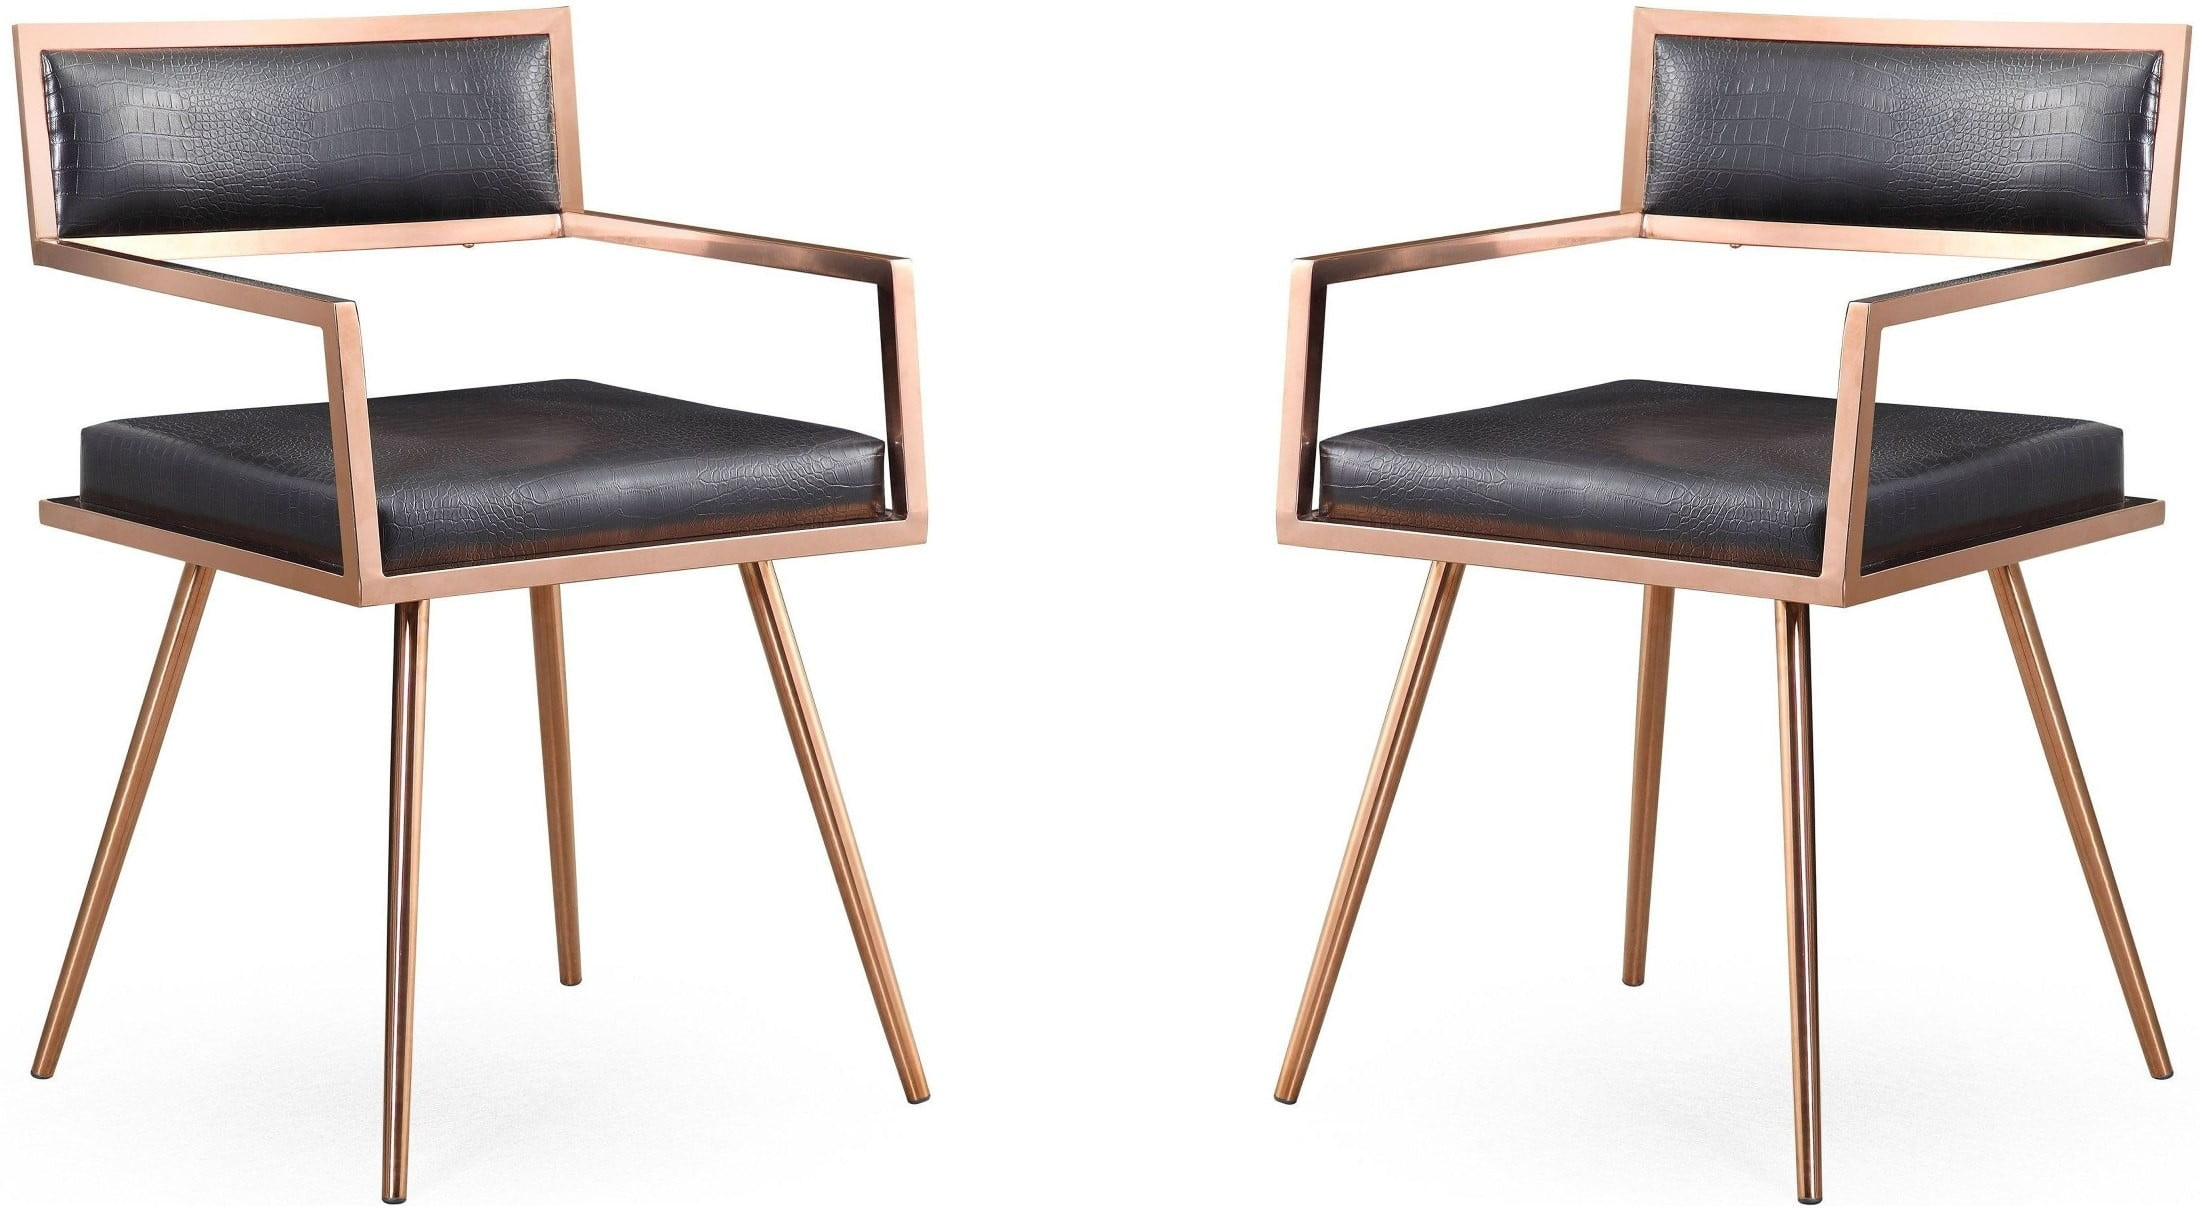 Marquee Black Croc Arm Chair Set Of 2 From Tov Coleman